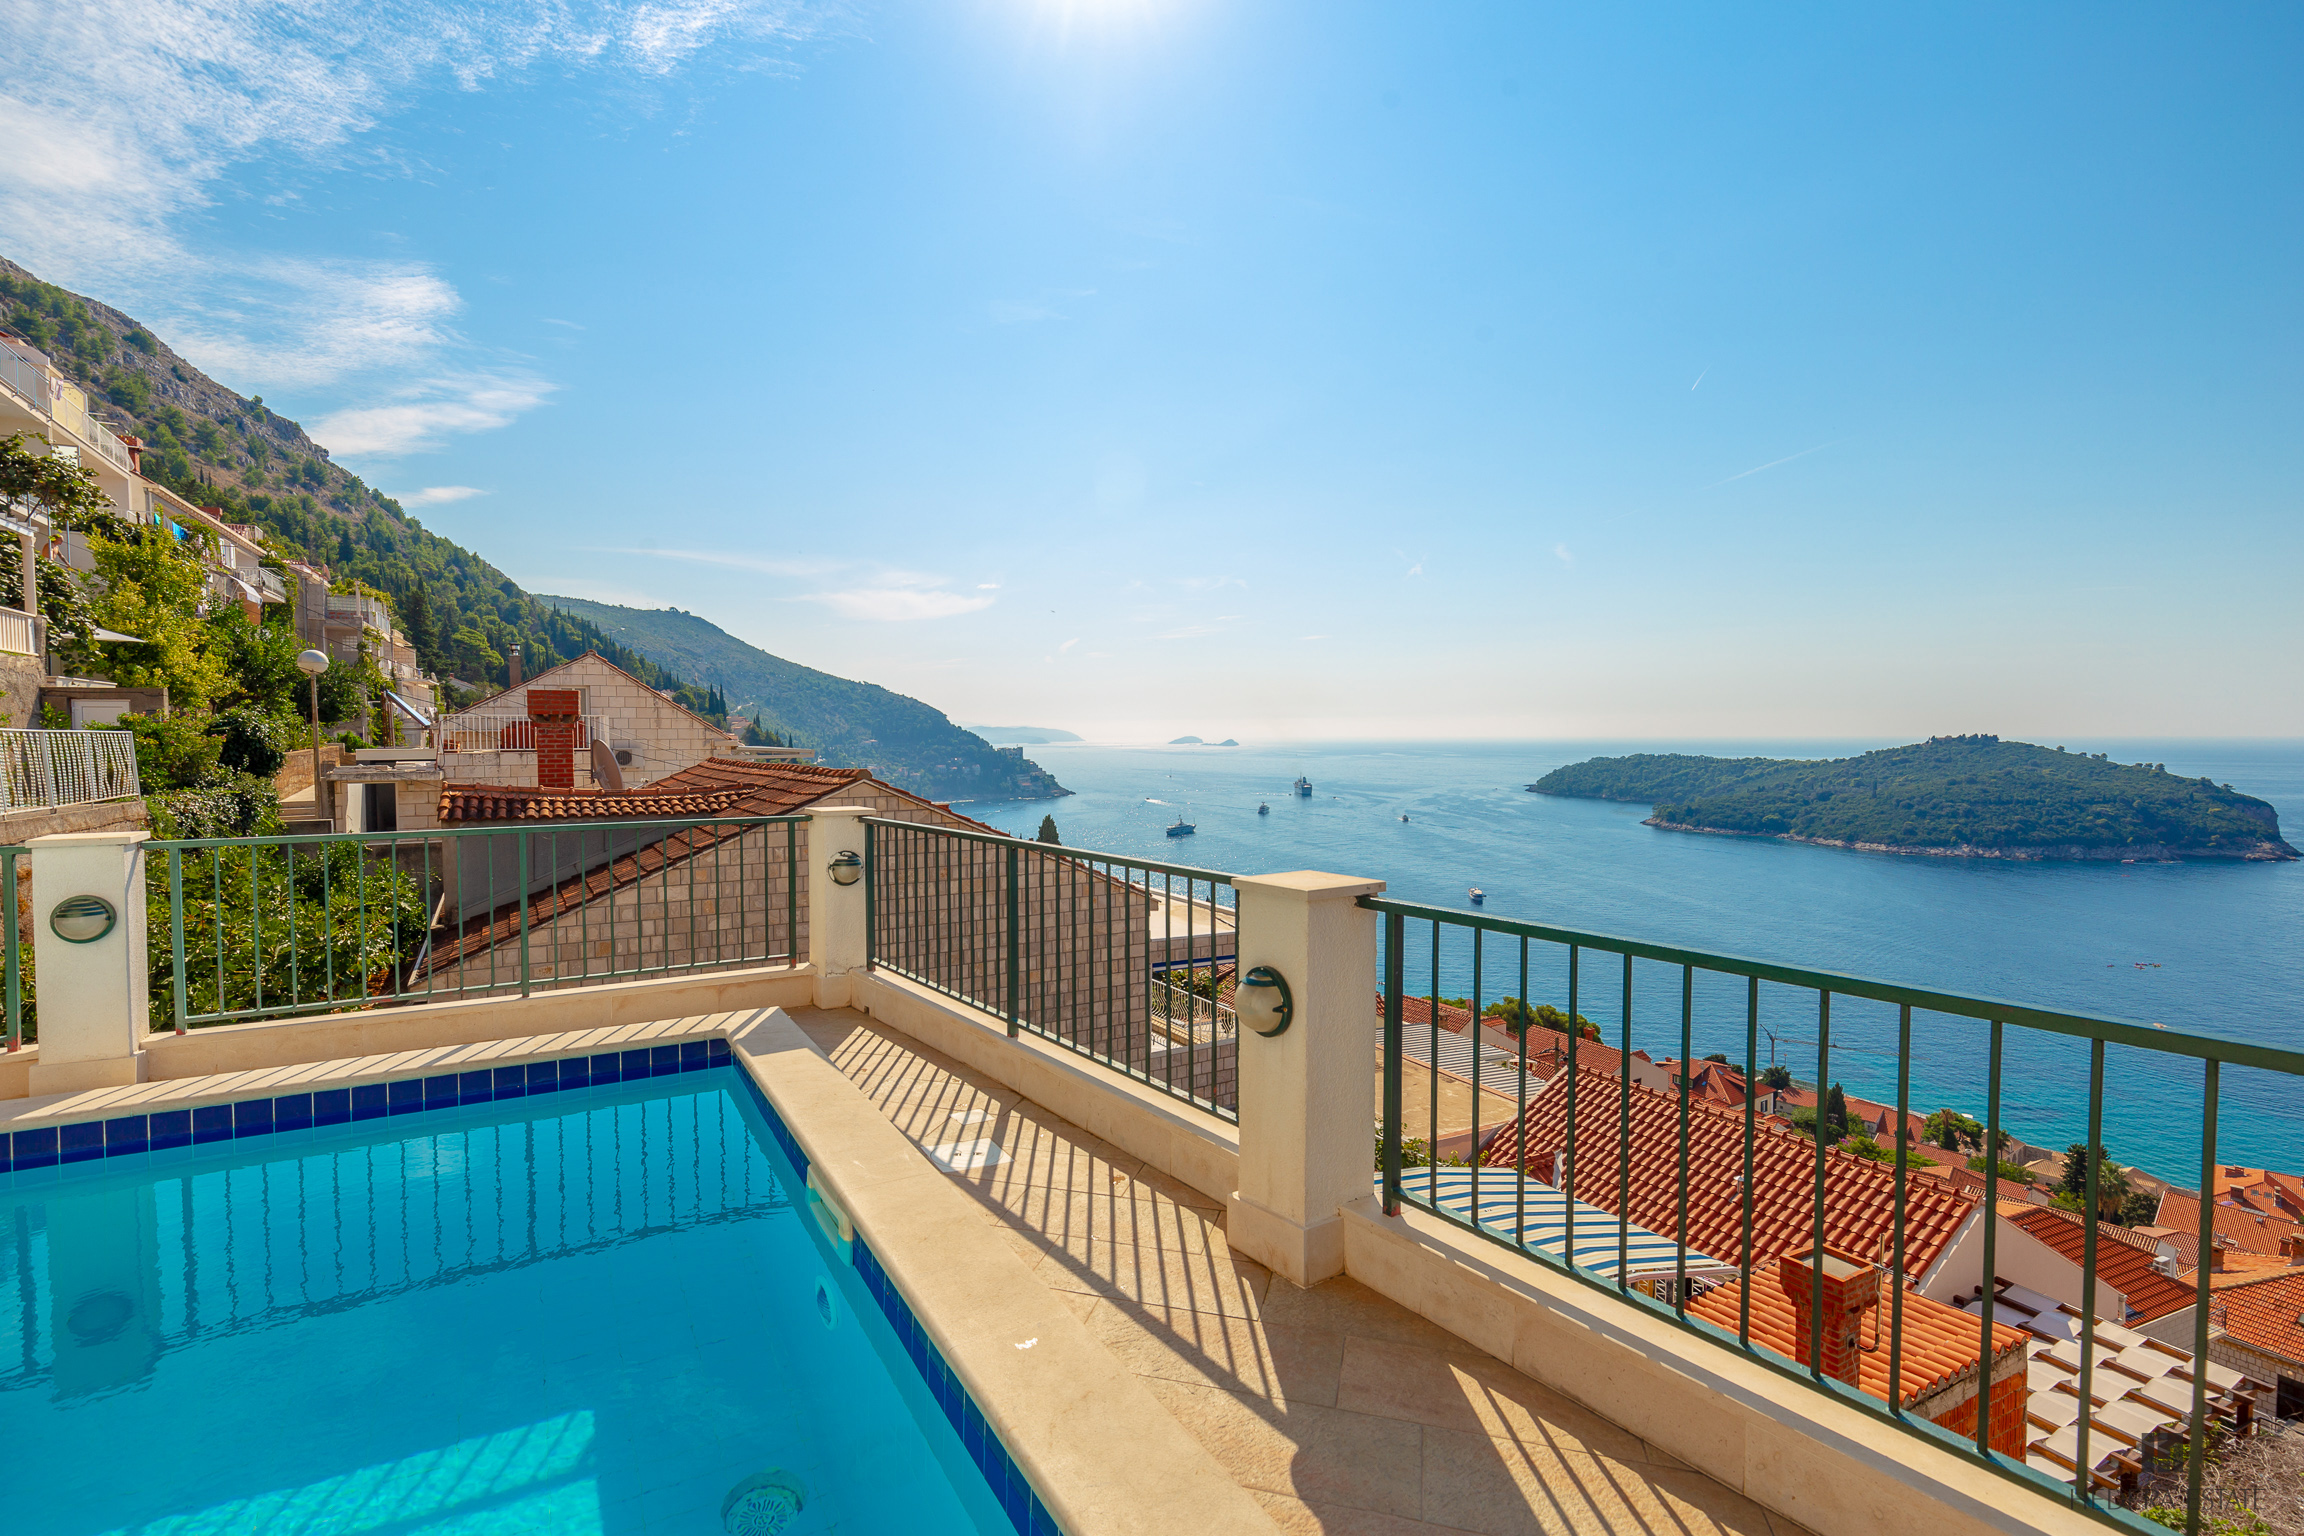 <p>Sleeps 6 (+2)<br />3 bedrooms<br />2 bathrooms<br />Swimming pool, 2 terraces/lounge/BBQ<br />parking place<br />Distance to Old Town: 7-10 minutes walk</p>